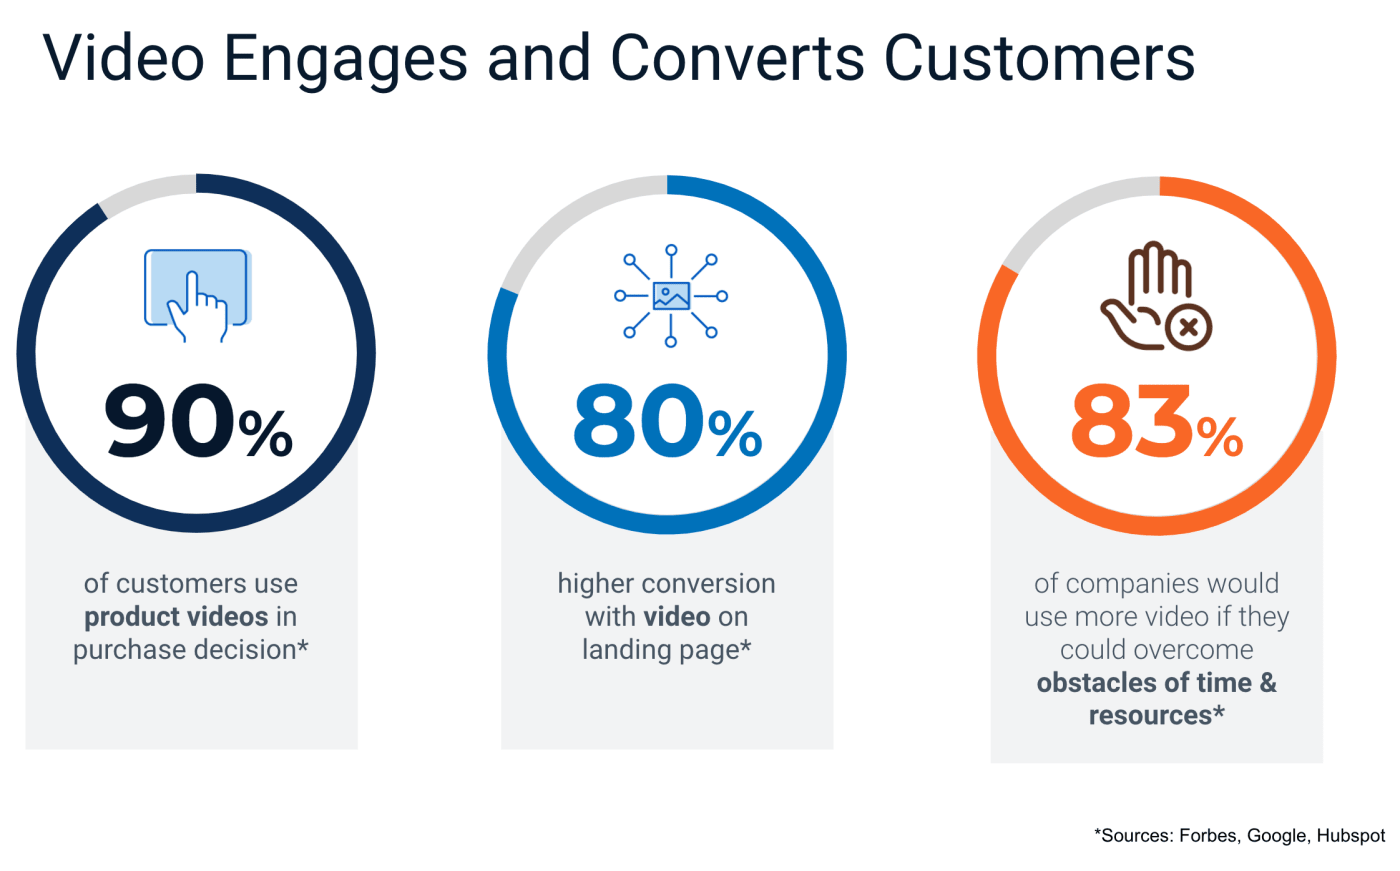 Video Engages and Converts Customers